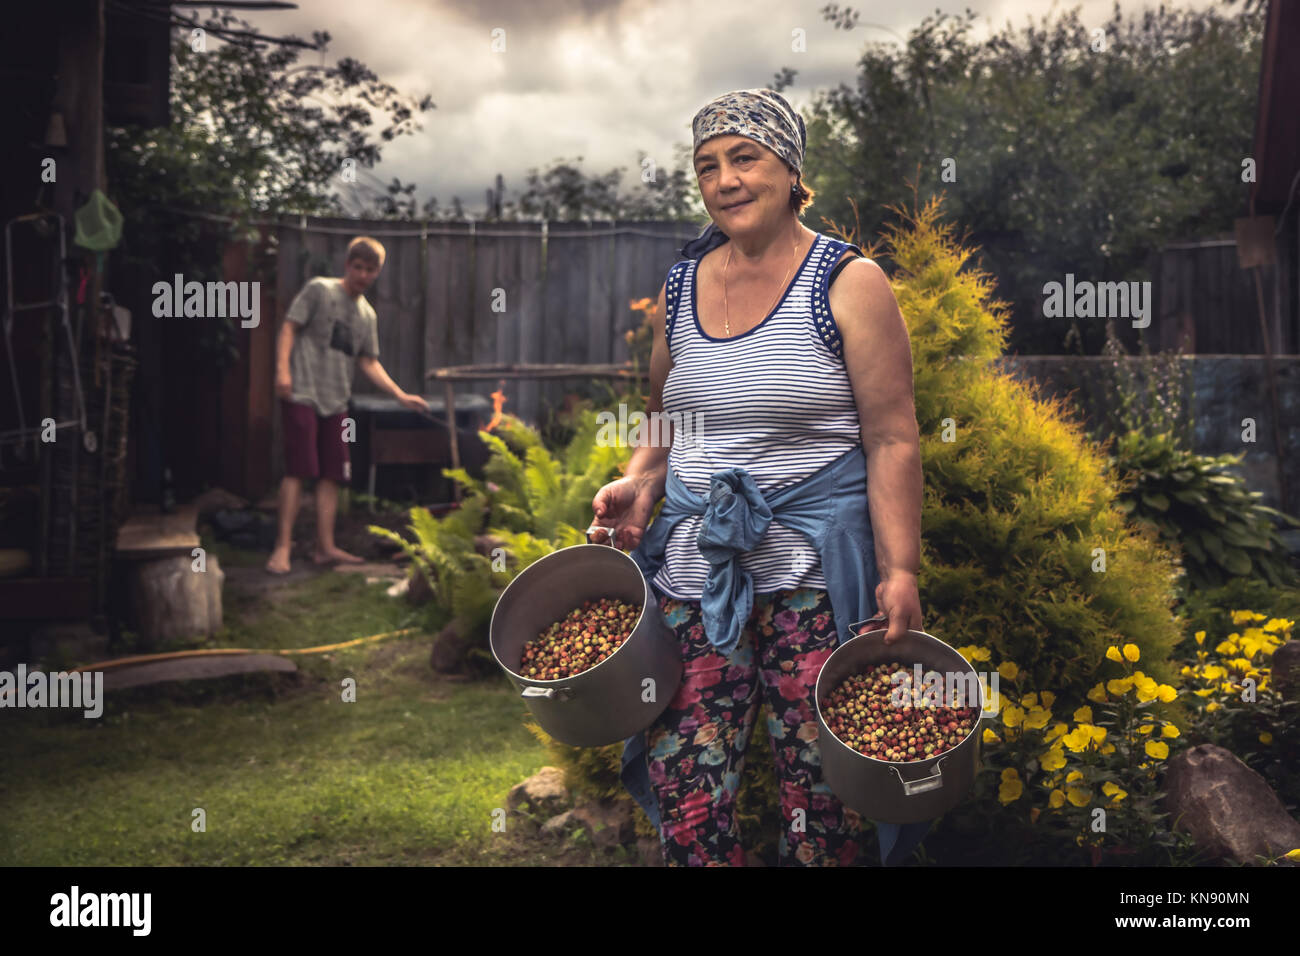 Cheerful senior women farmer in garden with crop of ripe strawberries during summer harvesting season in countryside - Stock Image